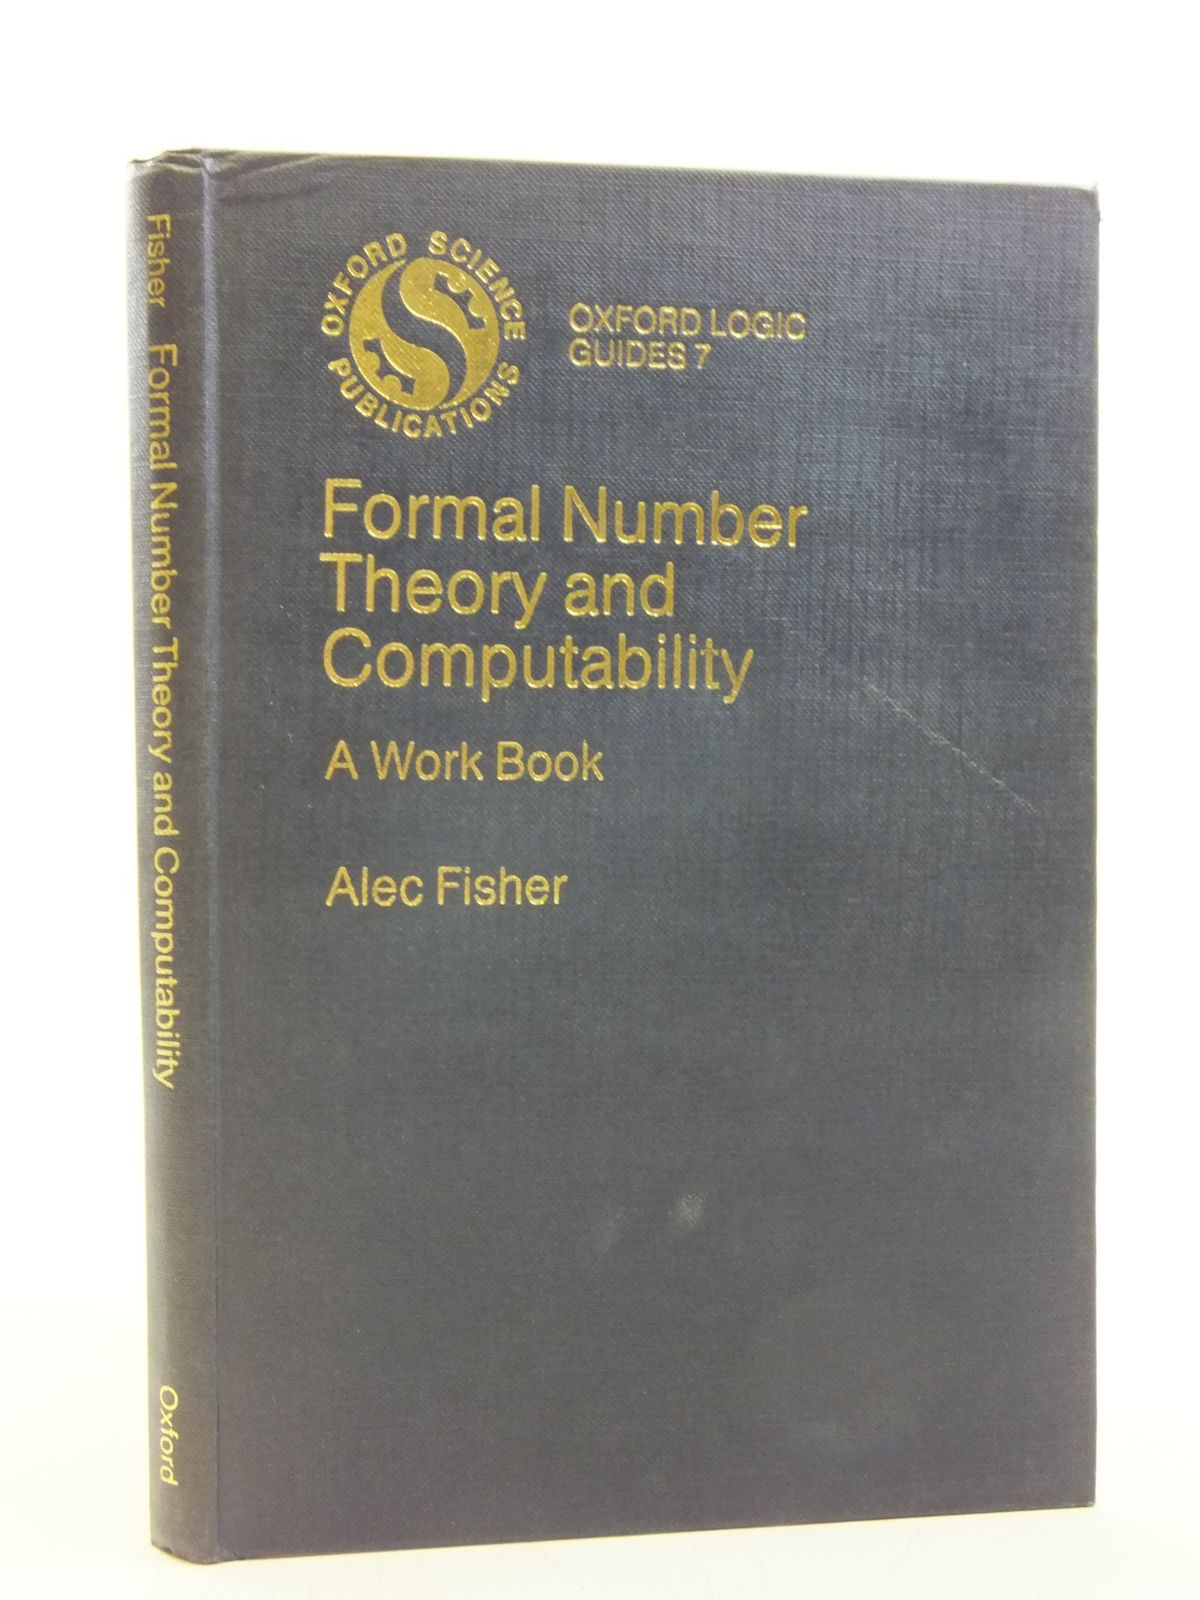 Photo of FORMAL NUMBER THEORY AND COMPUTABILITY A WORKBOOK written by Fisher, Alec published by Clarendon Press (STOCK CODE: 2120129)  for sale by Stella & Rose's Books